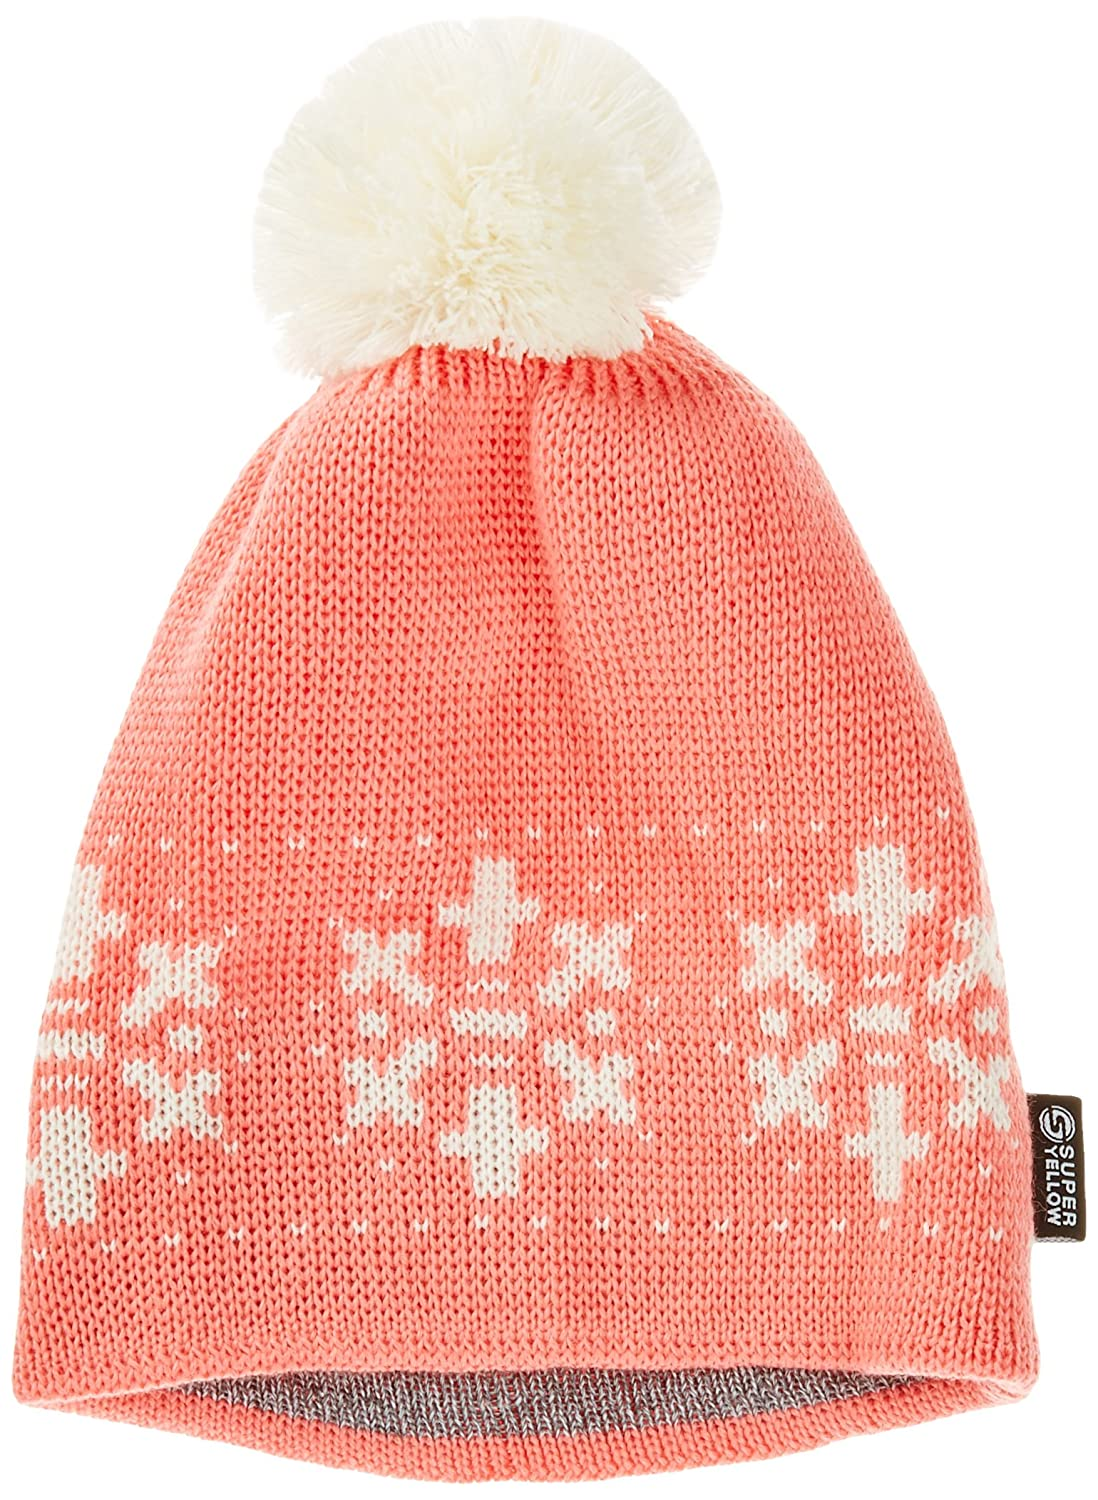 Super Gelb Hella Cable Knit Beanie, 2033-01